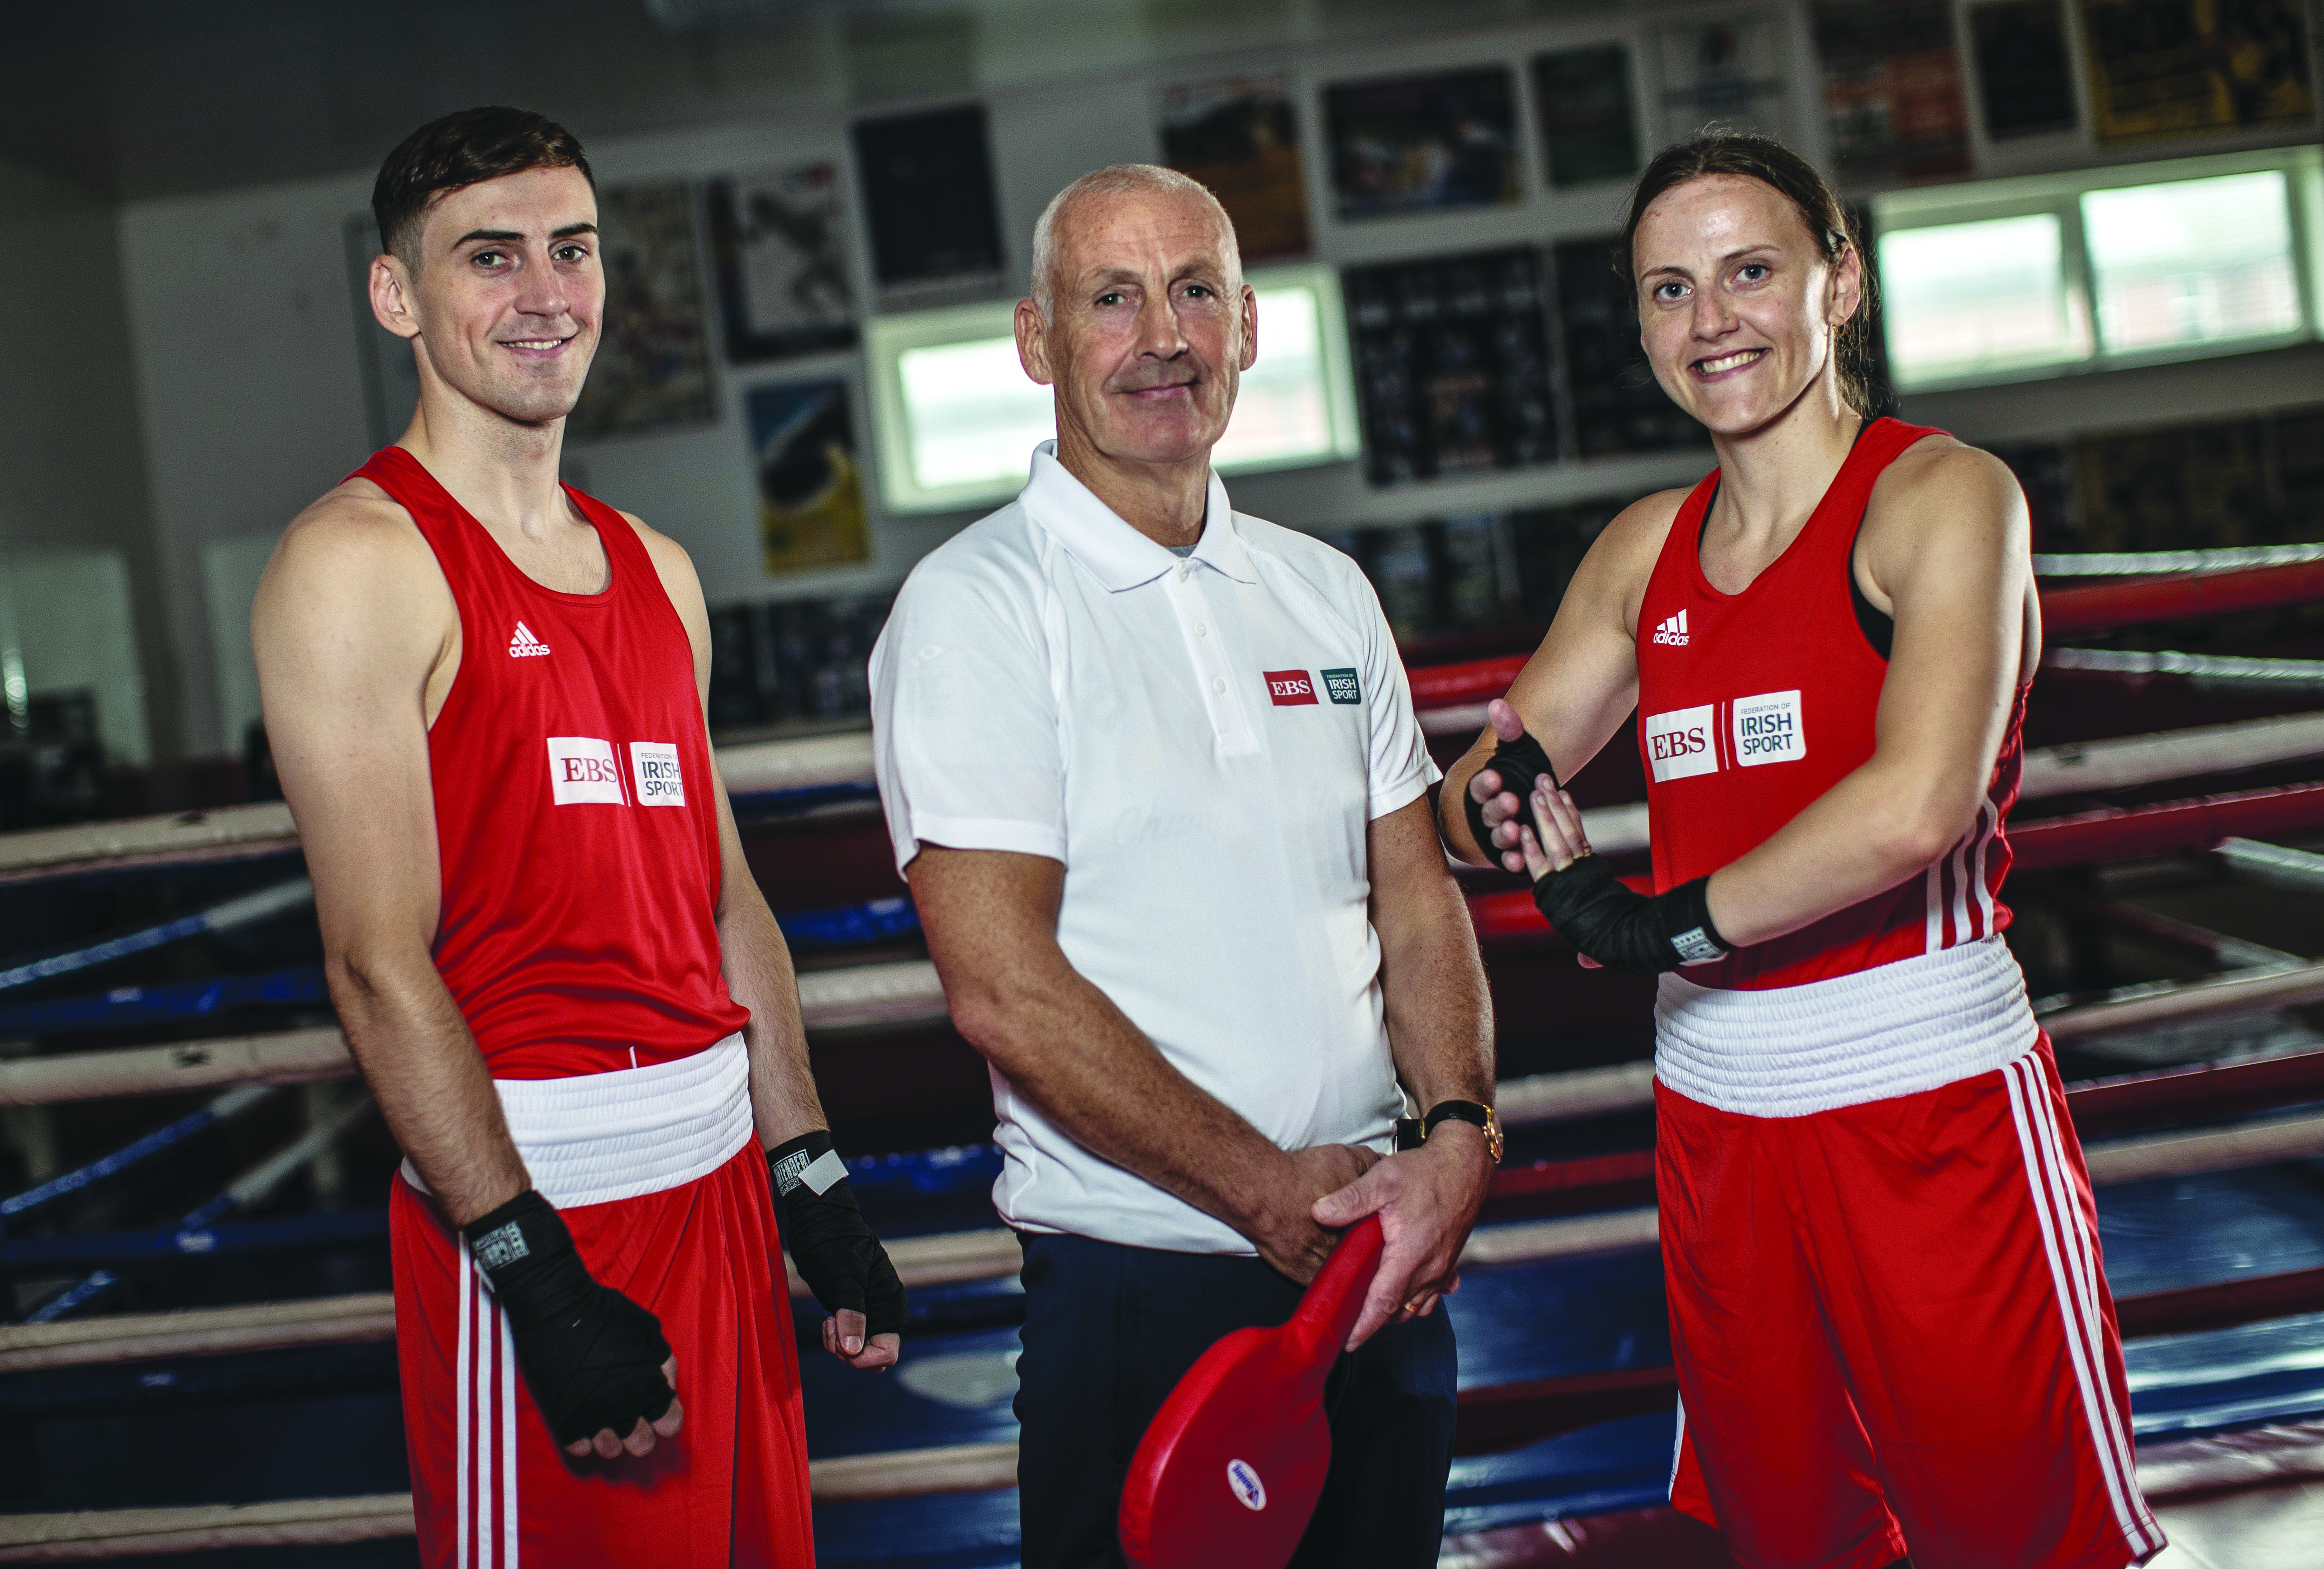 EBS ambassadors, Olympians and Ireland\'s history-making siblings, Aidan and Michaela Walsh are pictured alongside their dad and long-time boxing volunteer, Damien Walsh, following the launch of the 2021 Federation of Irish Sport Volunteers in Sport Awards